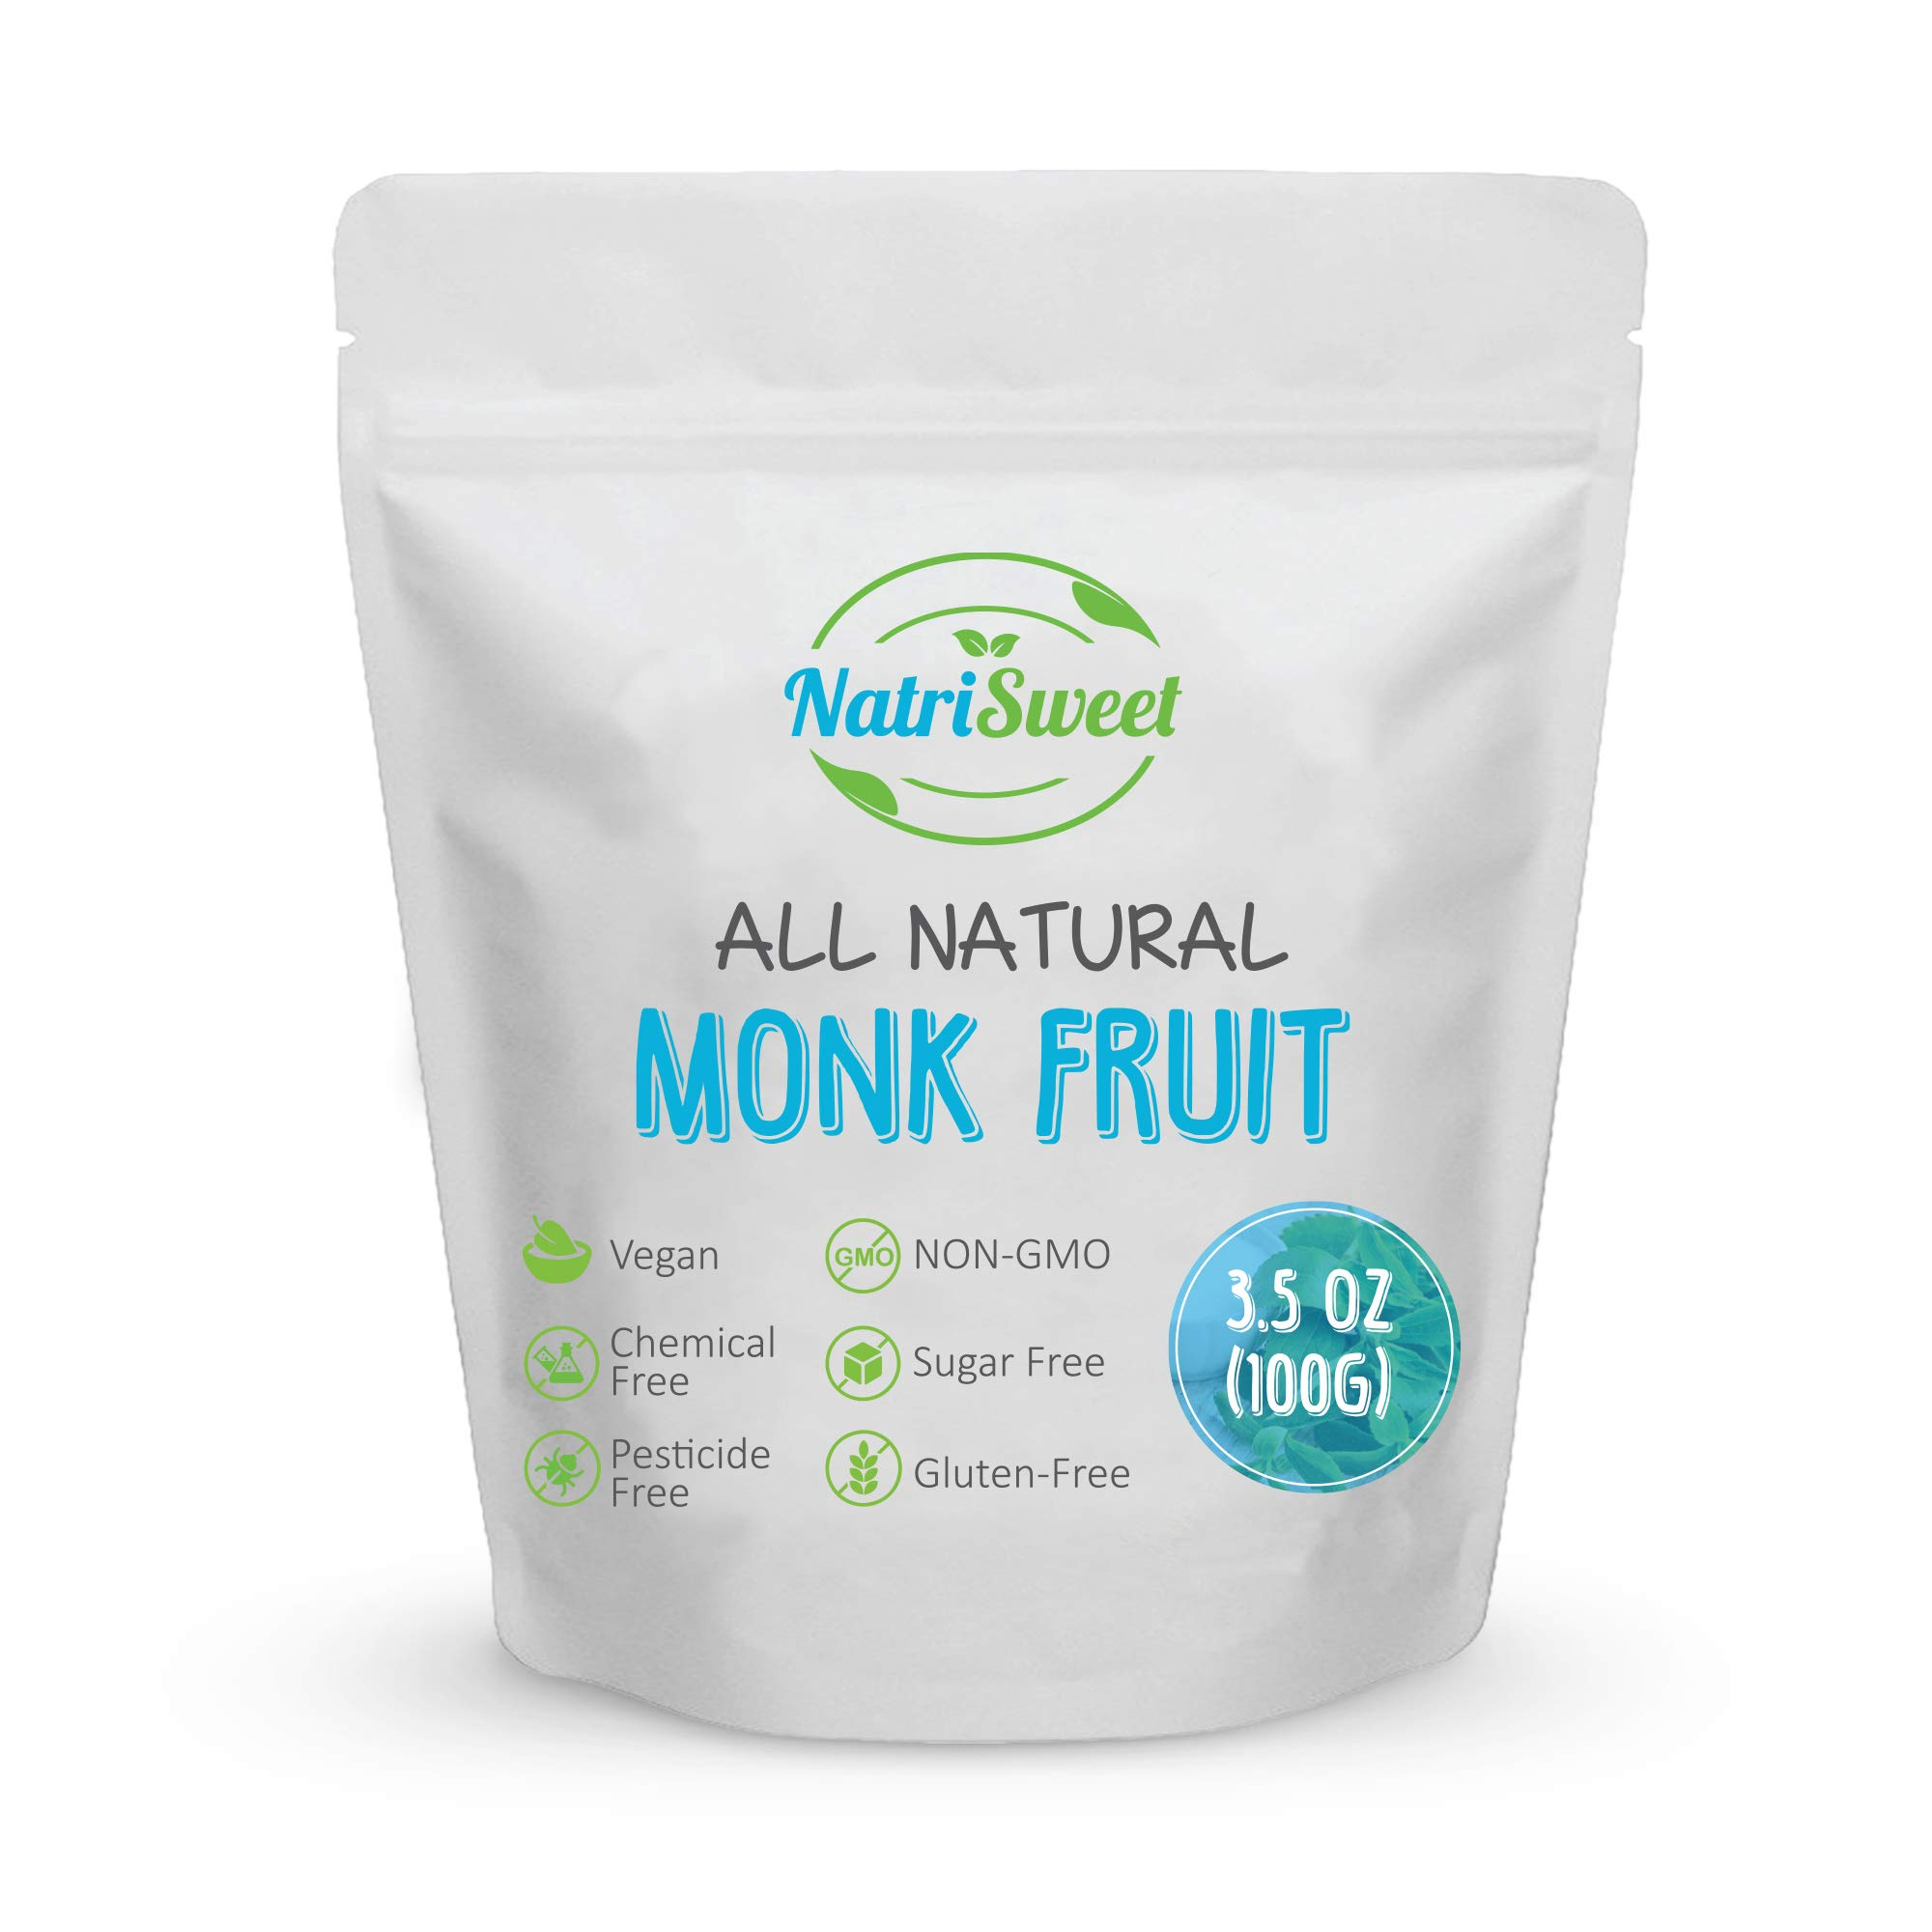 NatriSweet Monk Fruit Extract 3.5oz (100g) 322 Servings | Zero Calorie, Zero Carb, Natural Sweetener | Sugar Alternative with No Artificial Sweeteners | Perfect for Keto, Paleo & Low-Carb Dieters by NatriSweet (Image #1)